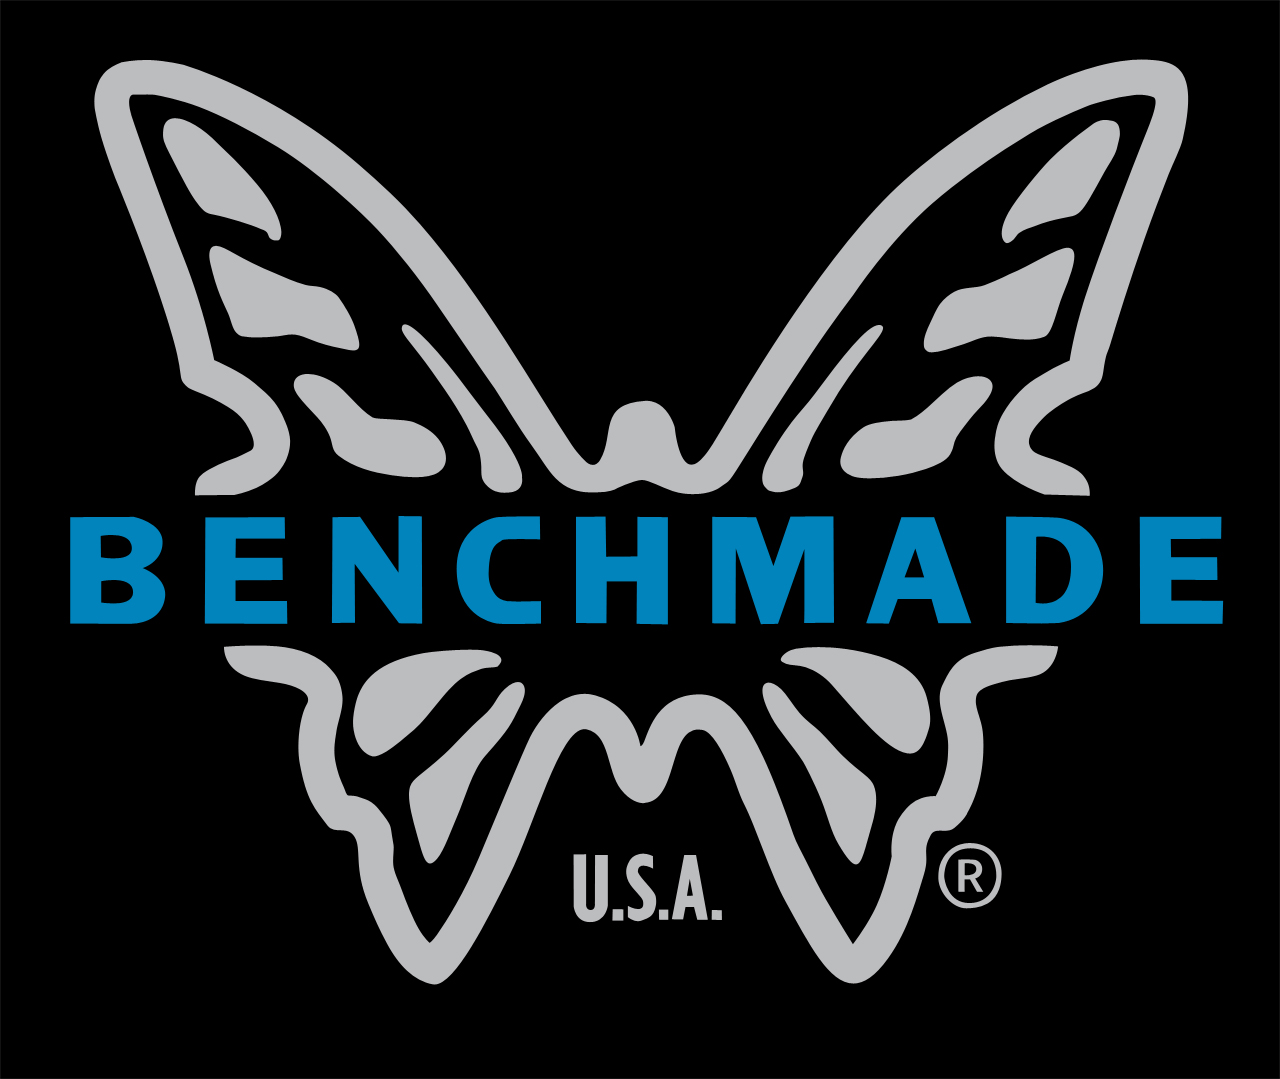 Benchmade Knives Category